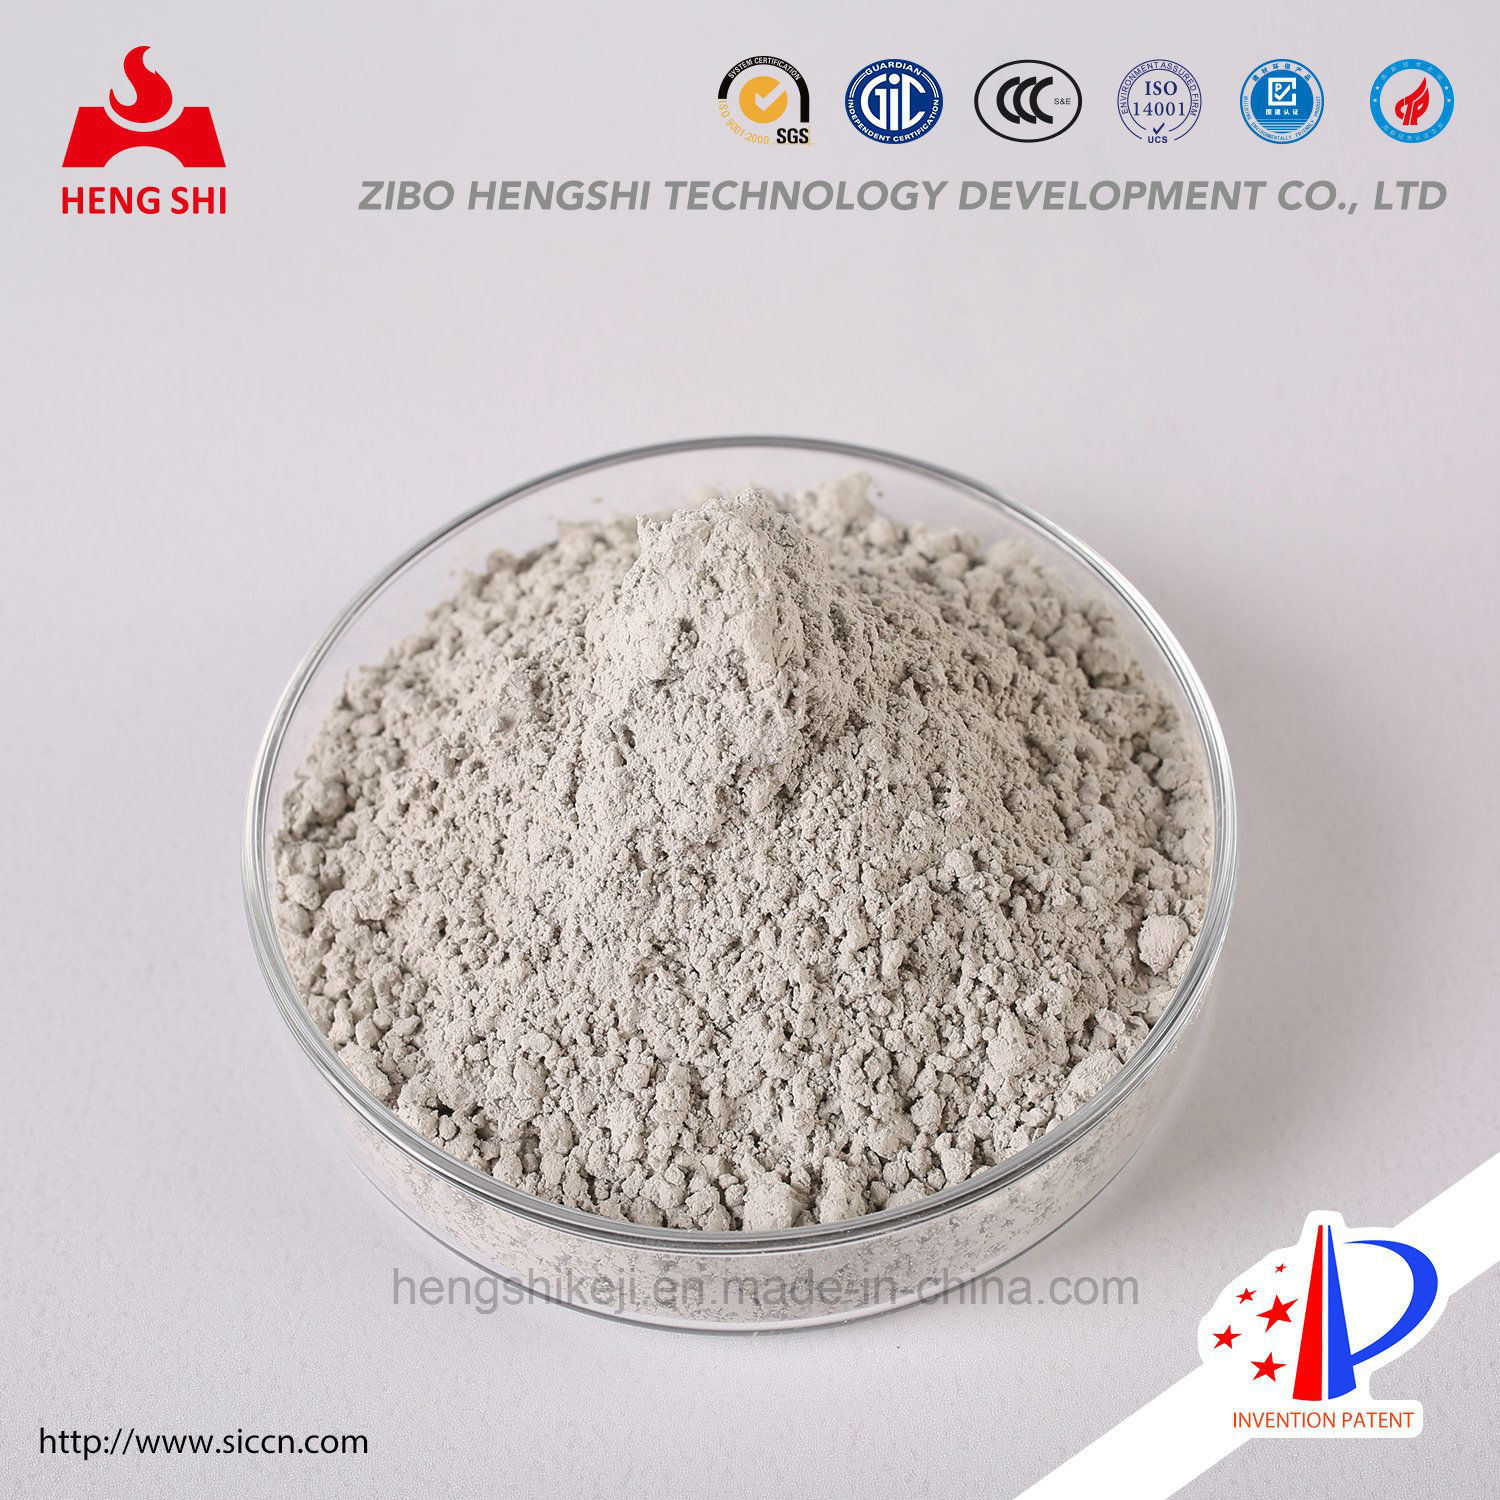 Refractory/ Ceramic/ Photovoltaic Coating Grade Raw Material Silicon Nitride Powder